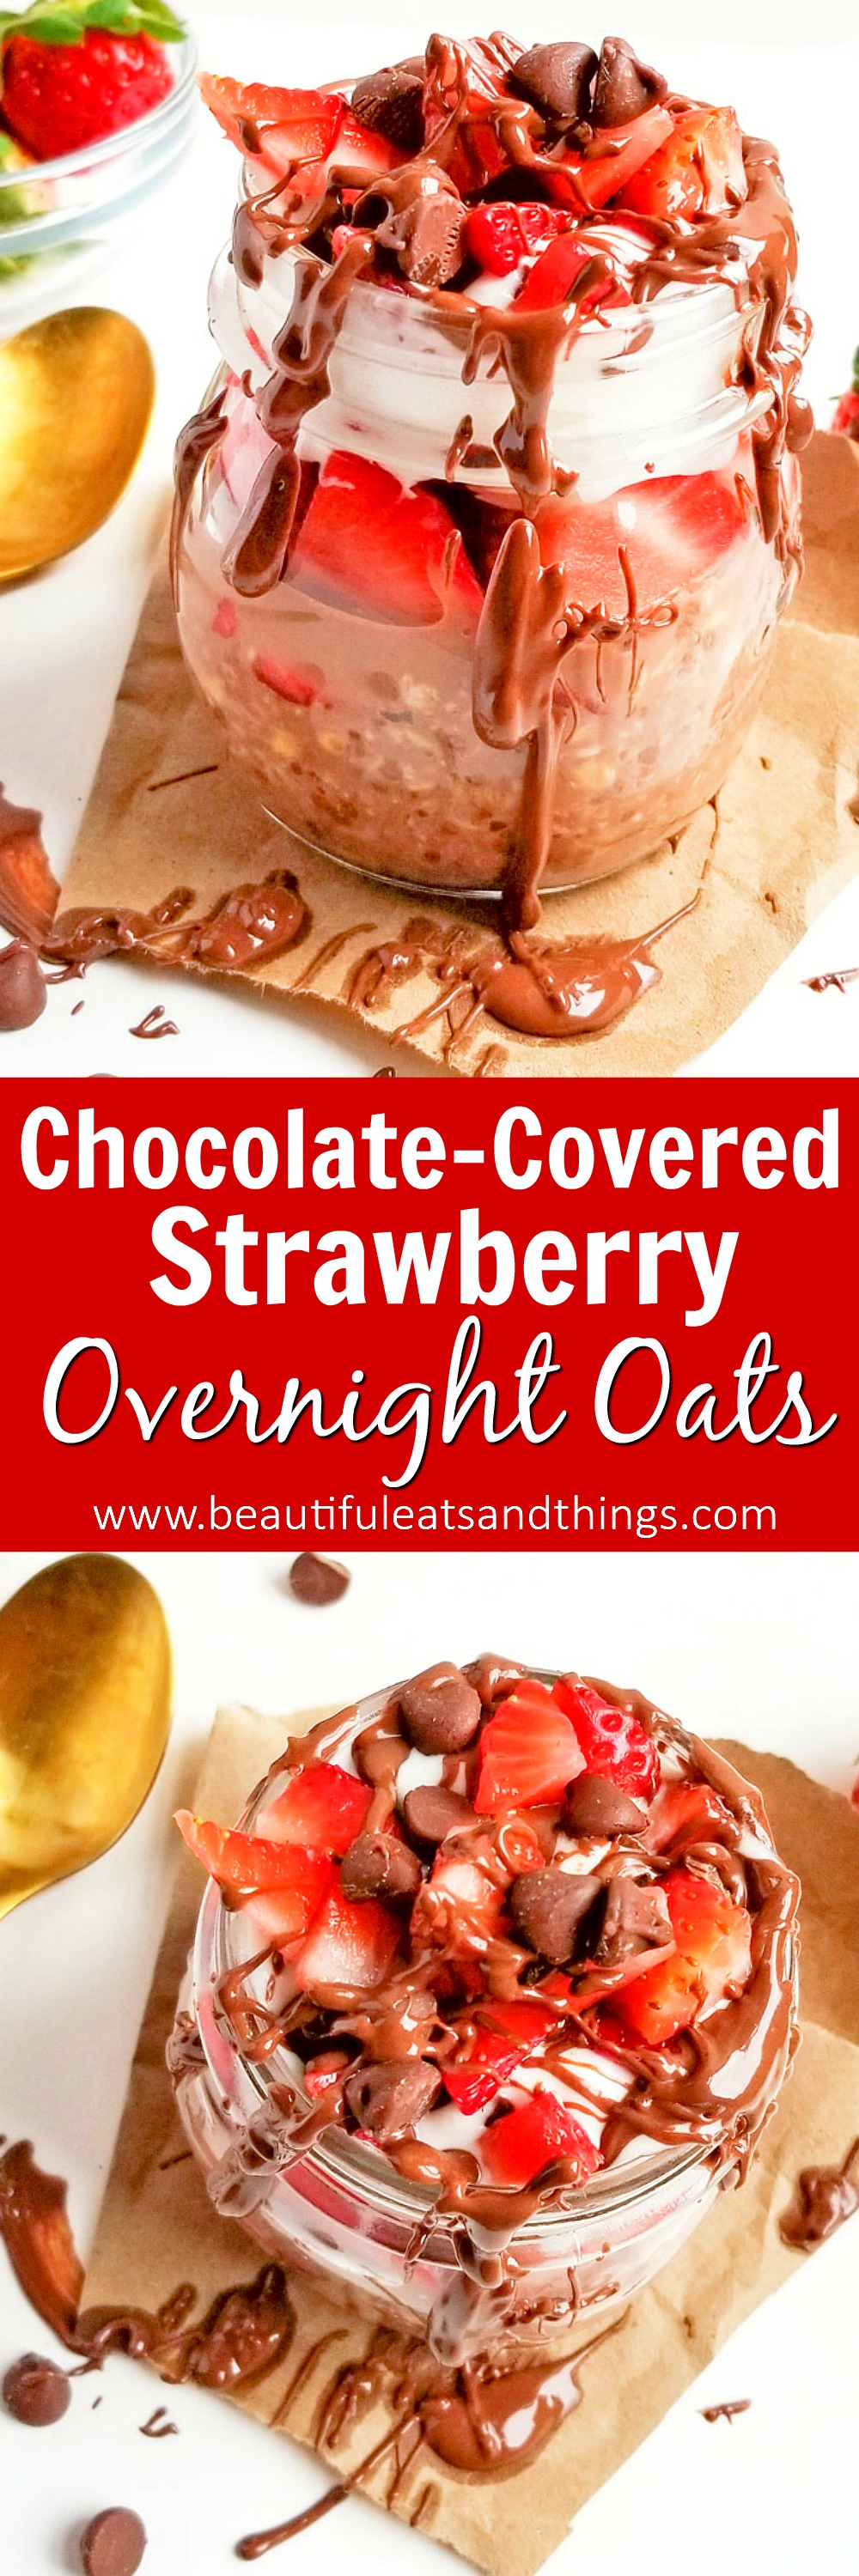 Decadent Chocolate Covered Strawberry Overnight Oats